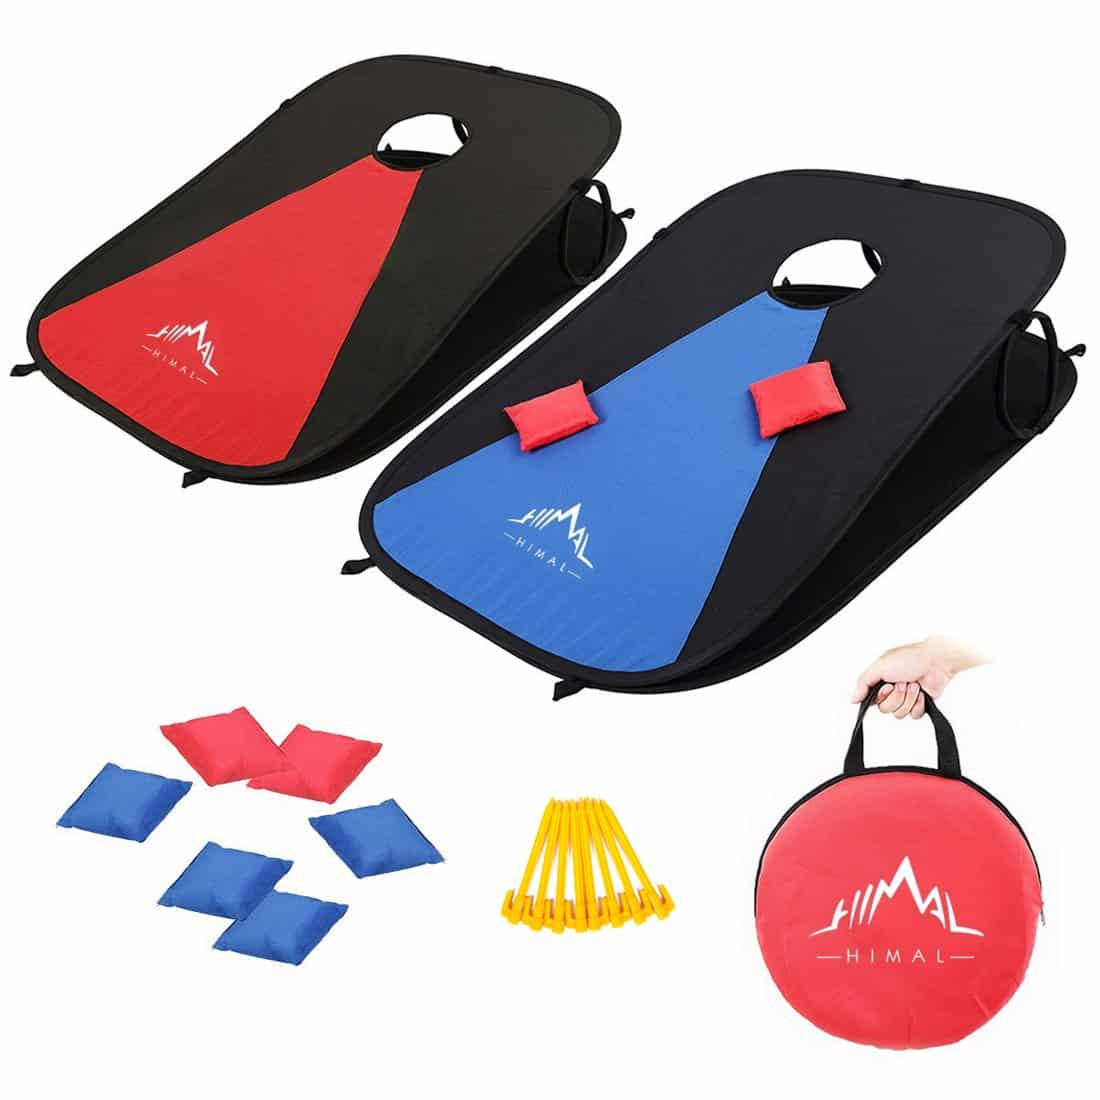 Himal Collapsible Portable Corn Hole Boards With 8 Cornhole Bean Bags